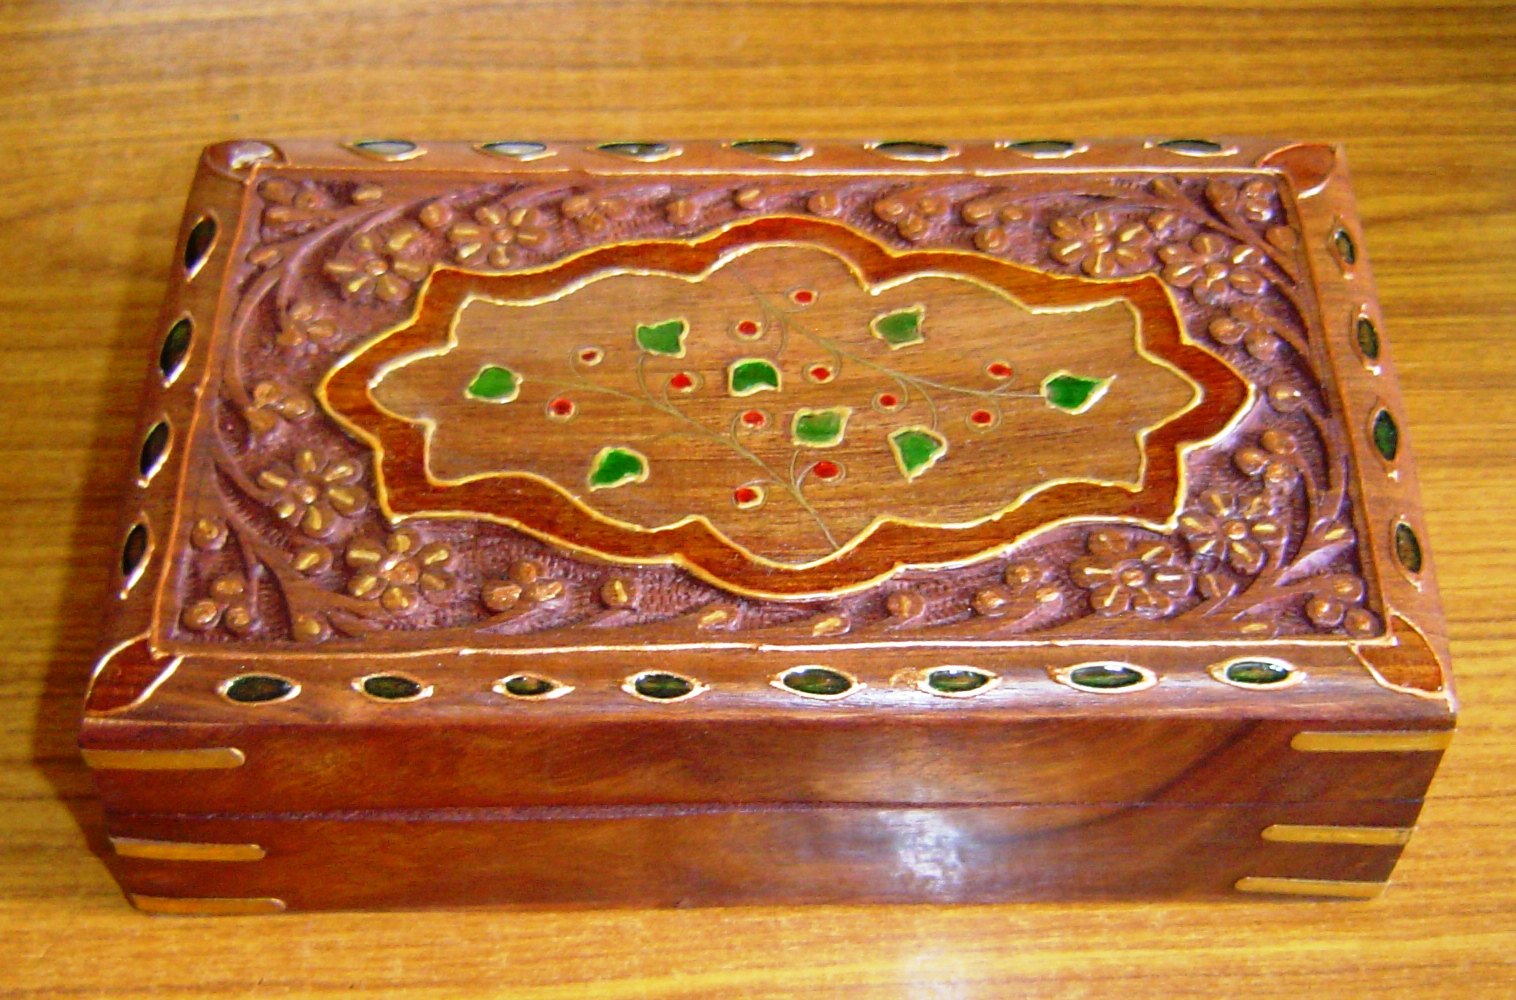 130054 Sheesham Wood carving and decorative box